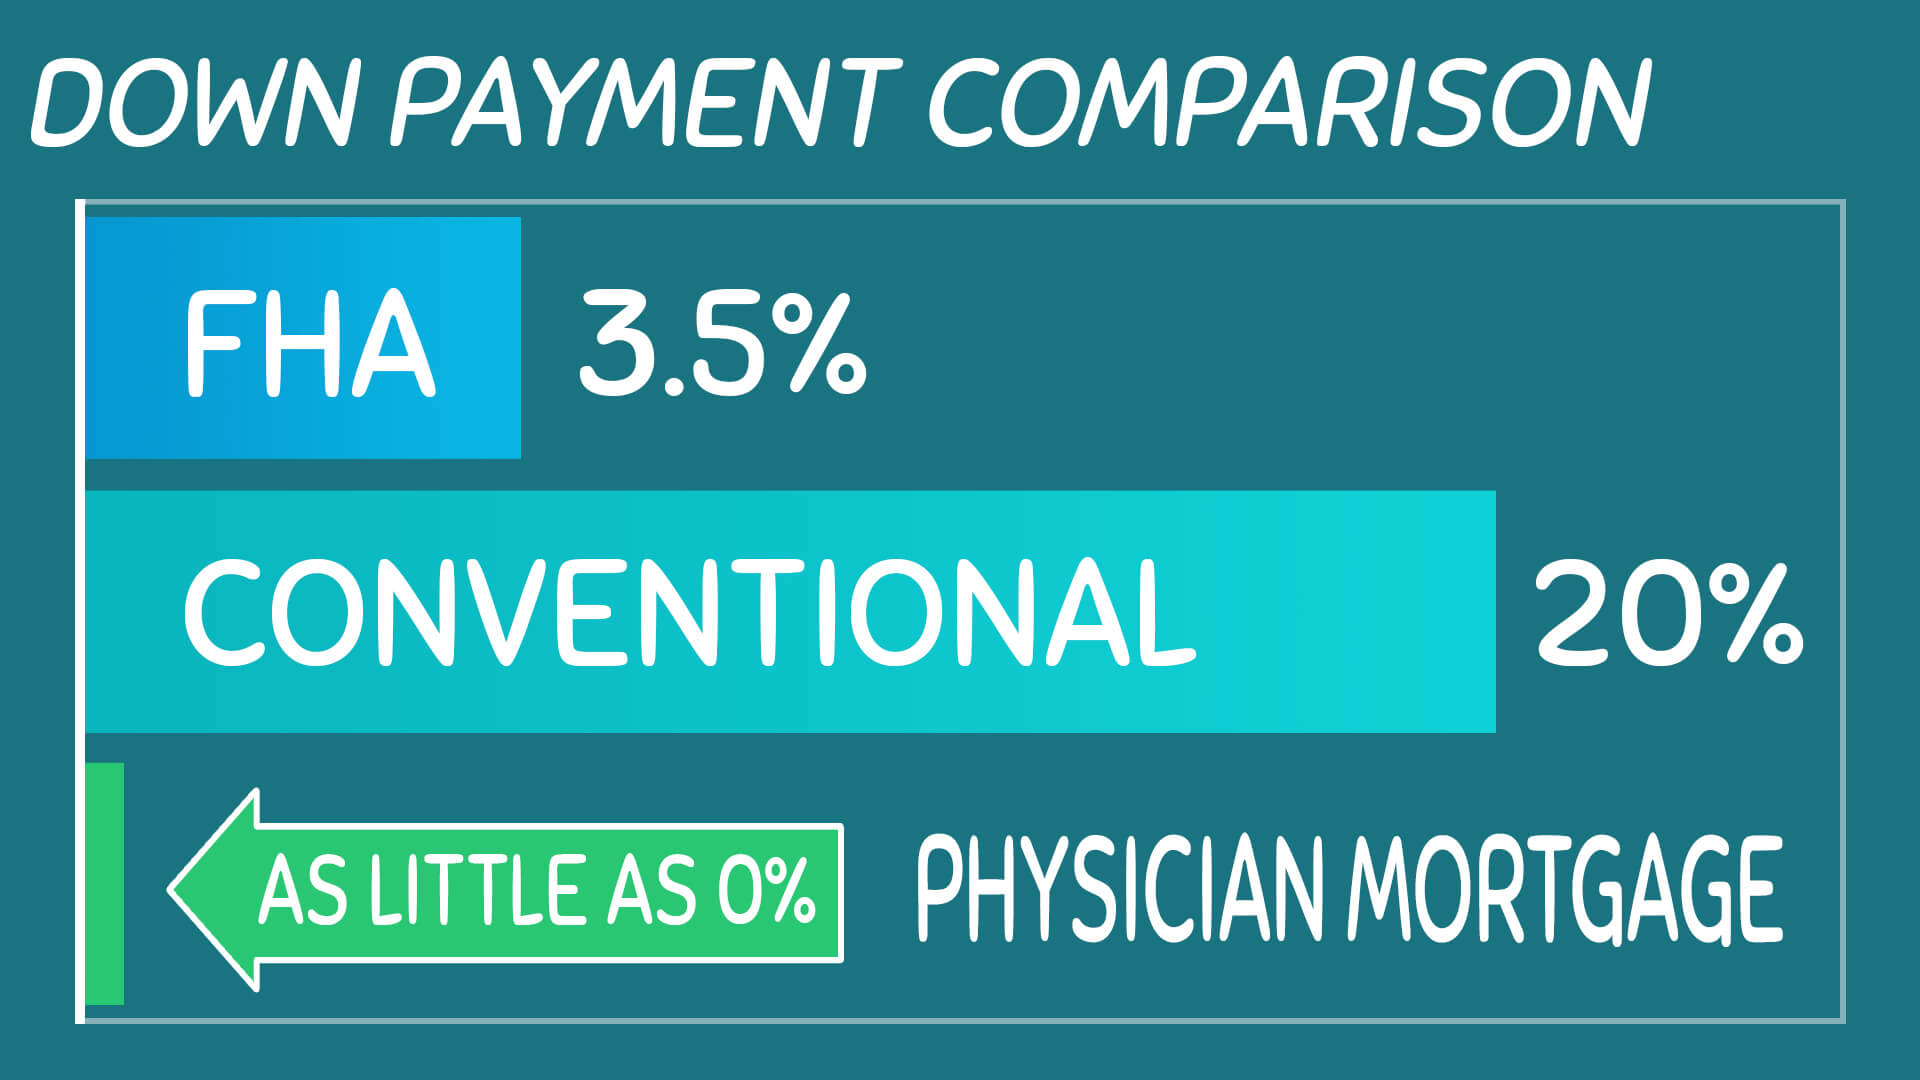 Physician Mortgage Loans: The Definitive Guide